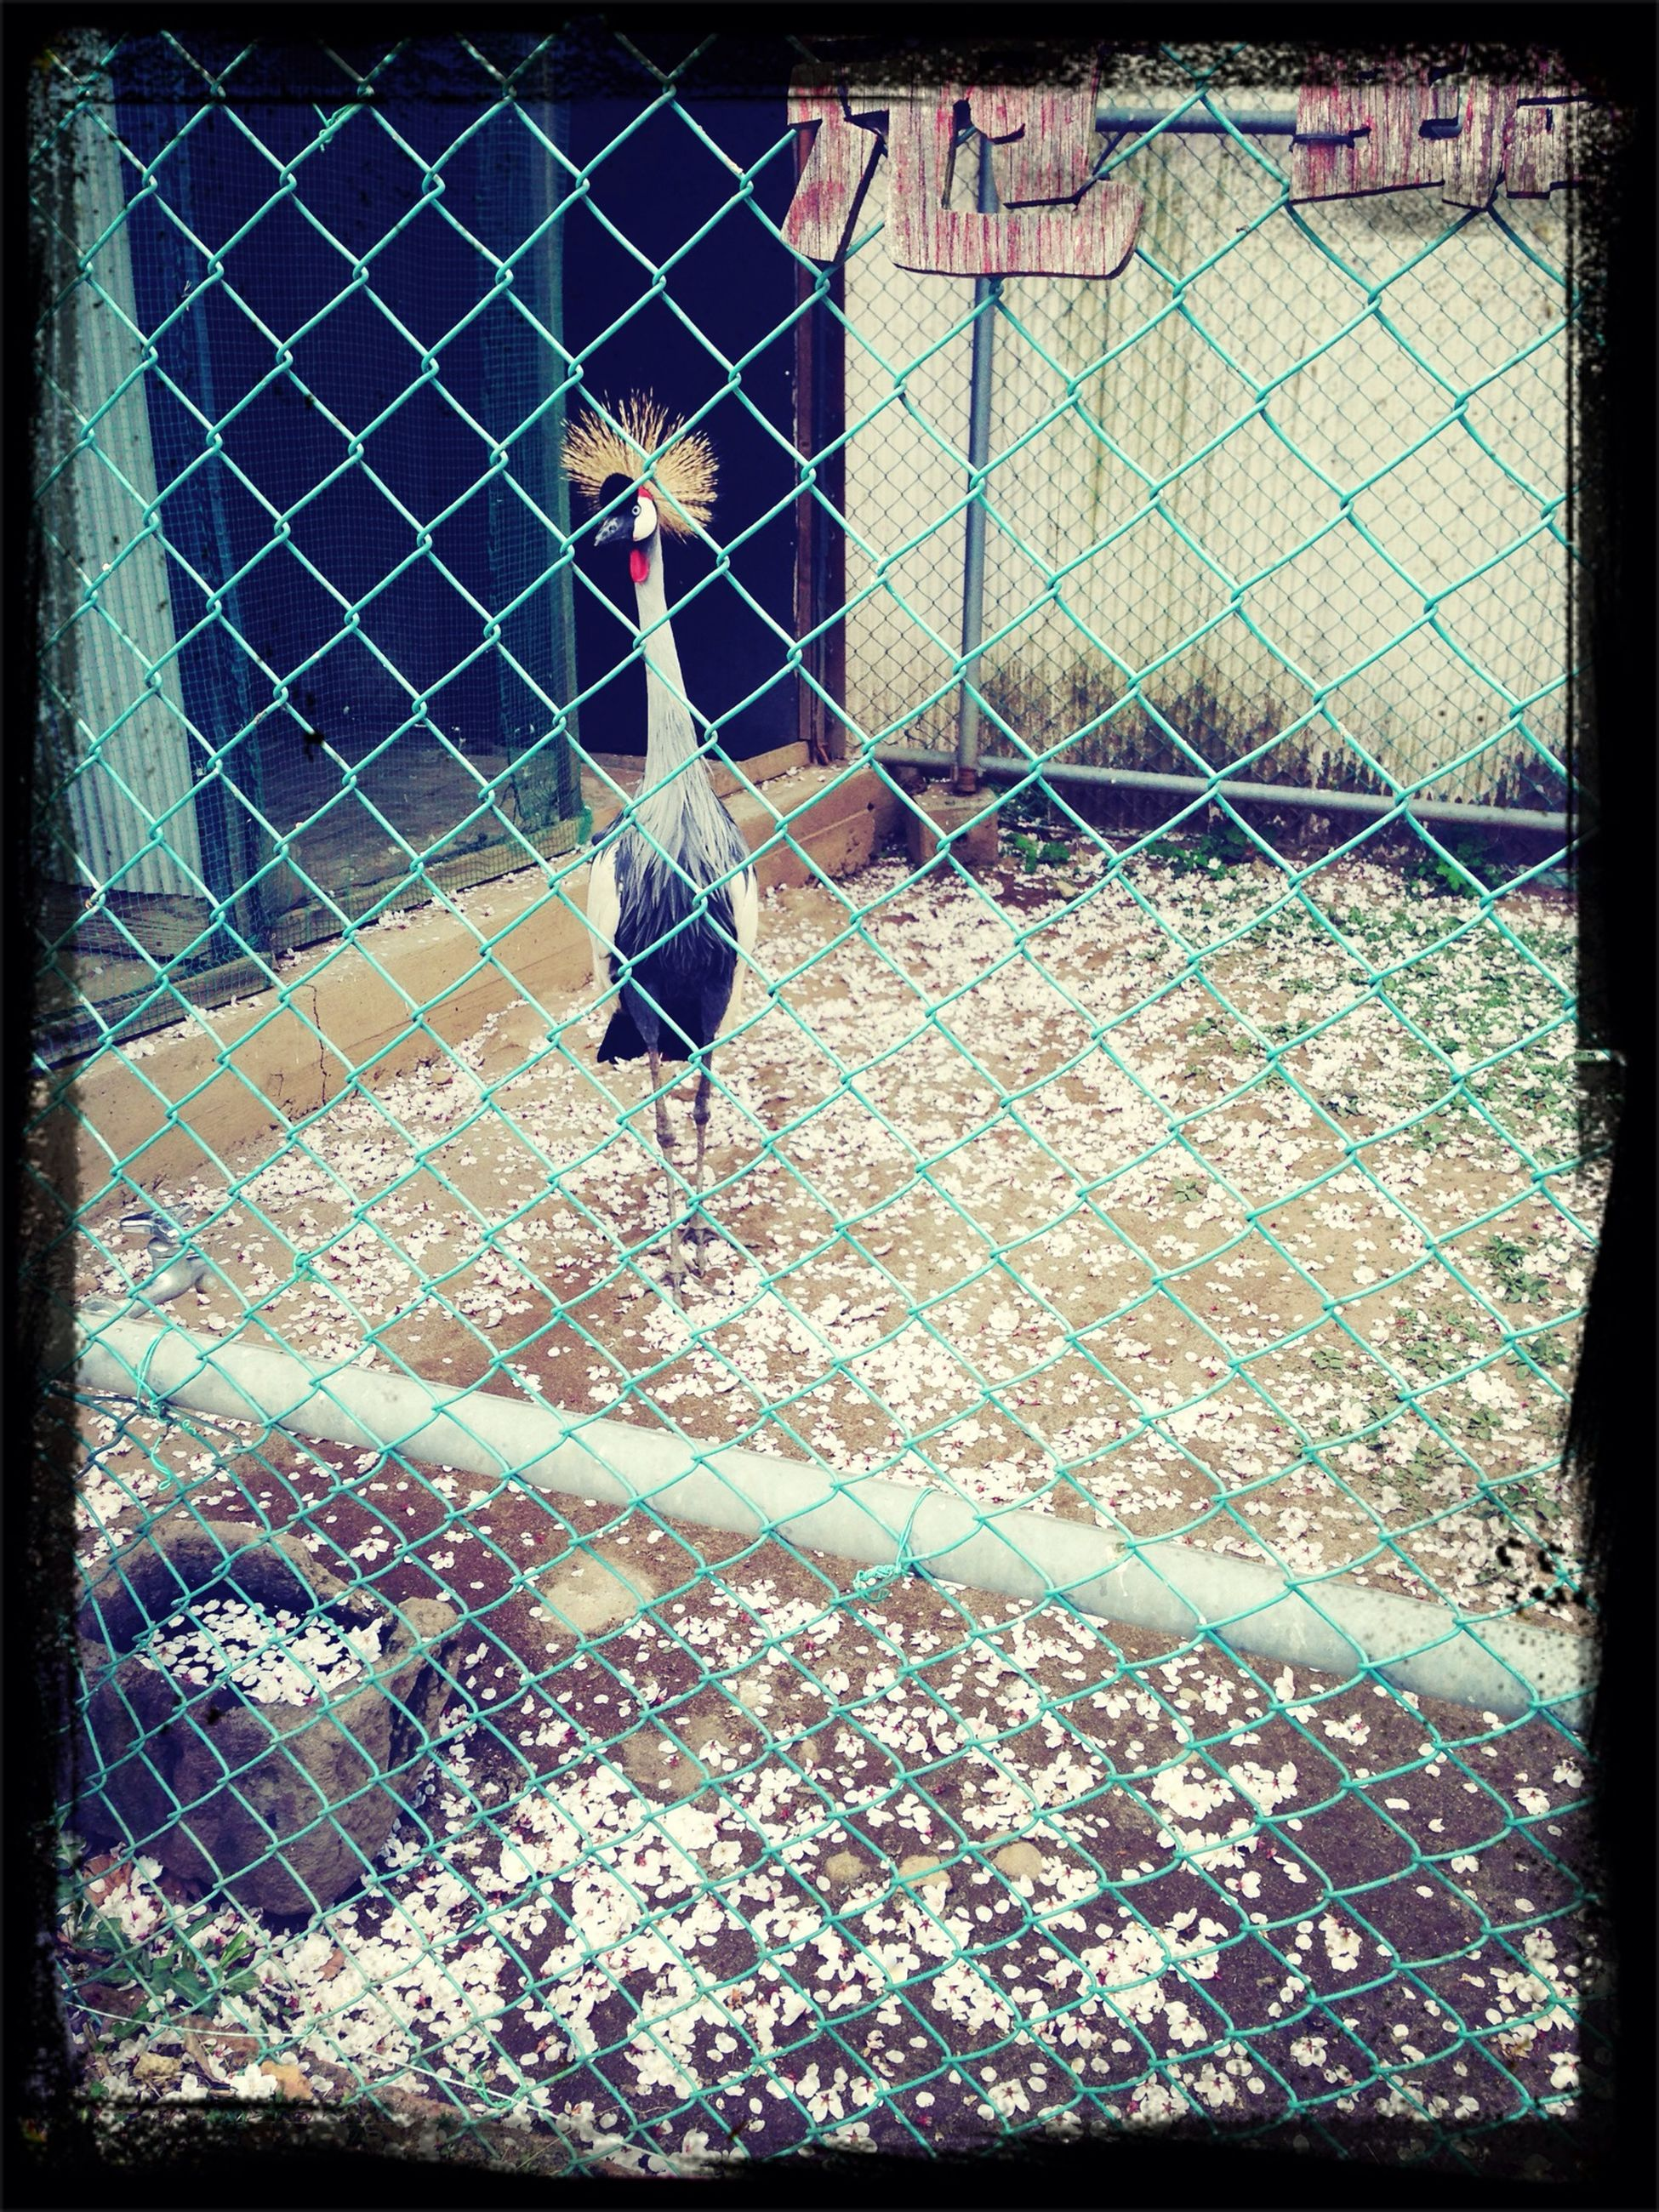 bird, animal themes, transfer print, animals in the wild, fence, wildlife, auto post production filter, one animal, full length, chainlink fence, protection, day, safety, metal, outdoors, perching, security, no people, nature, pigeon